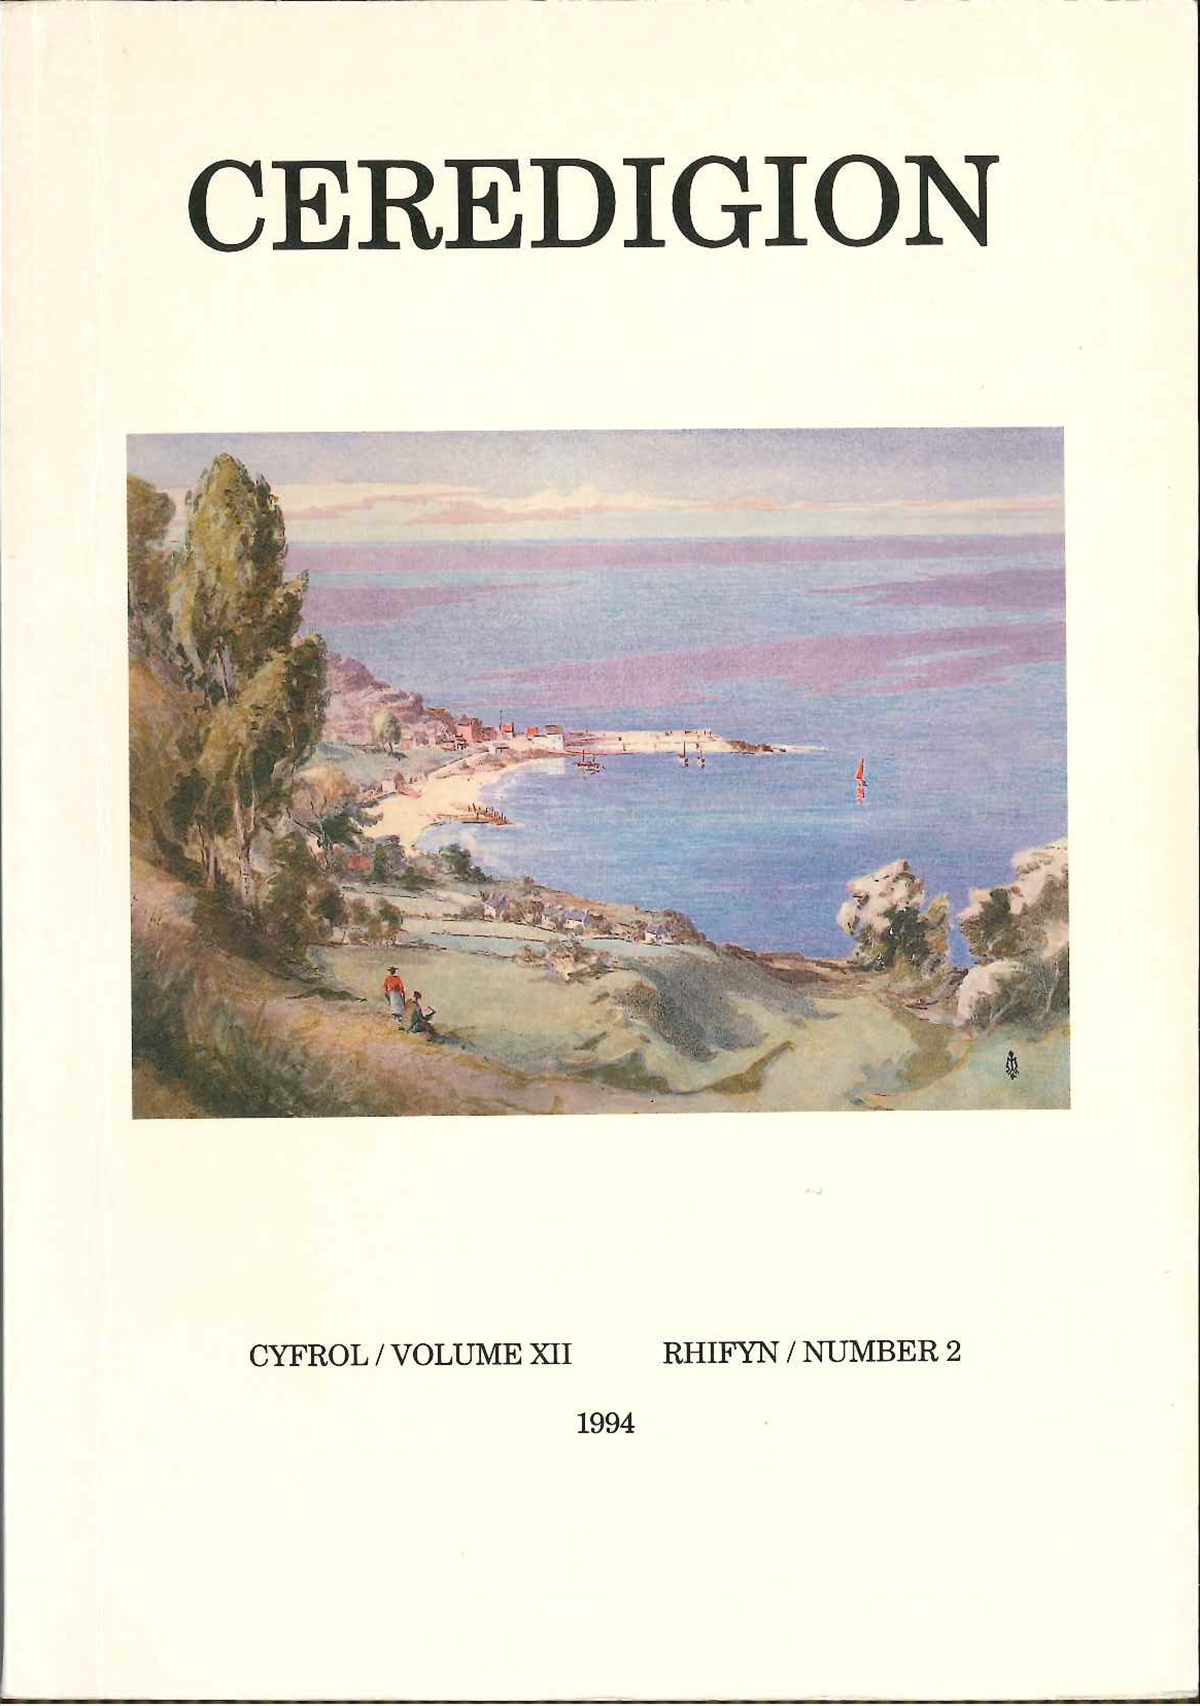 Ceredigion Journal of the Ceredigion Antiquarian Society Vol XII, No 2 1994 - ISBN 0069 2263